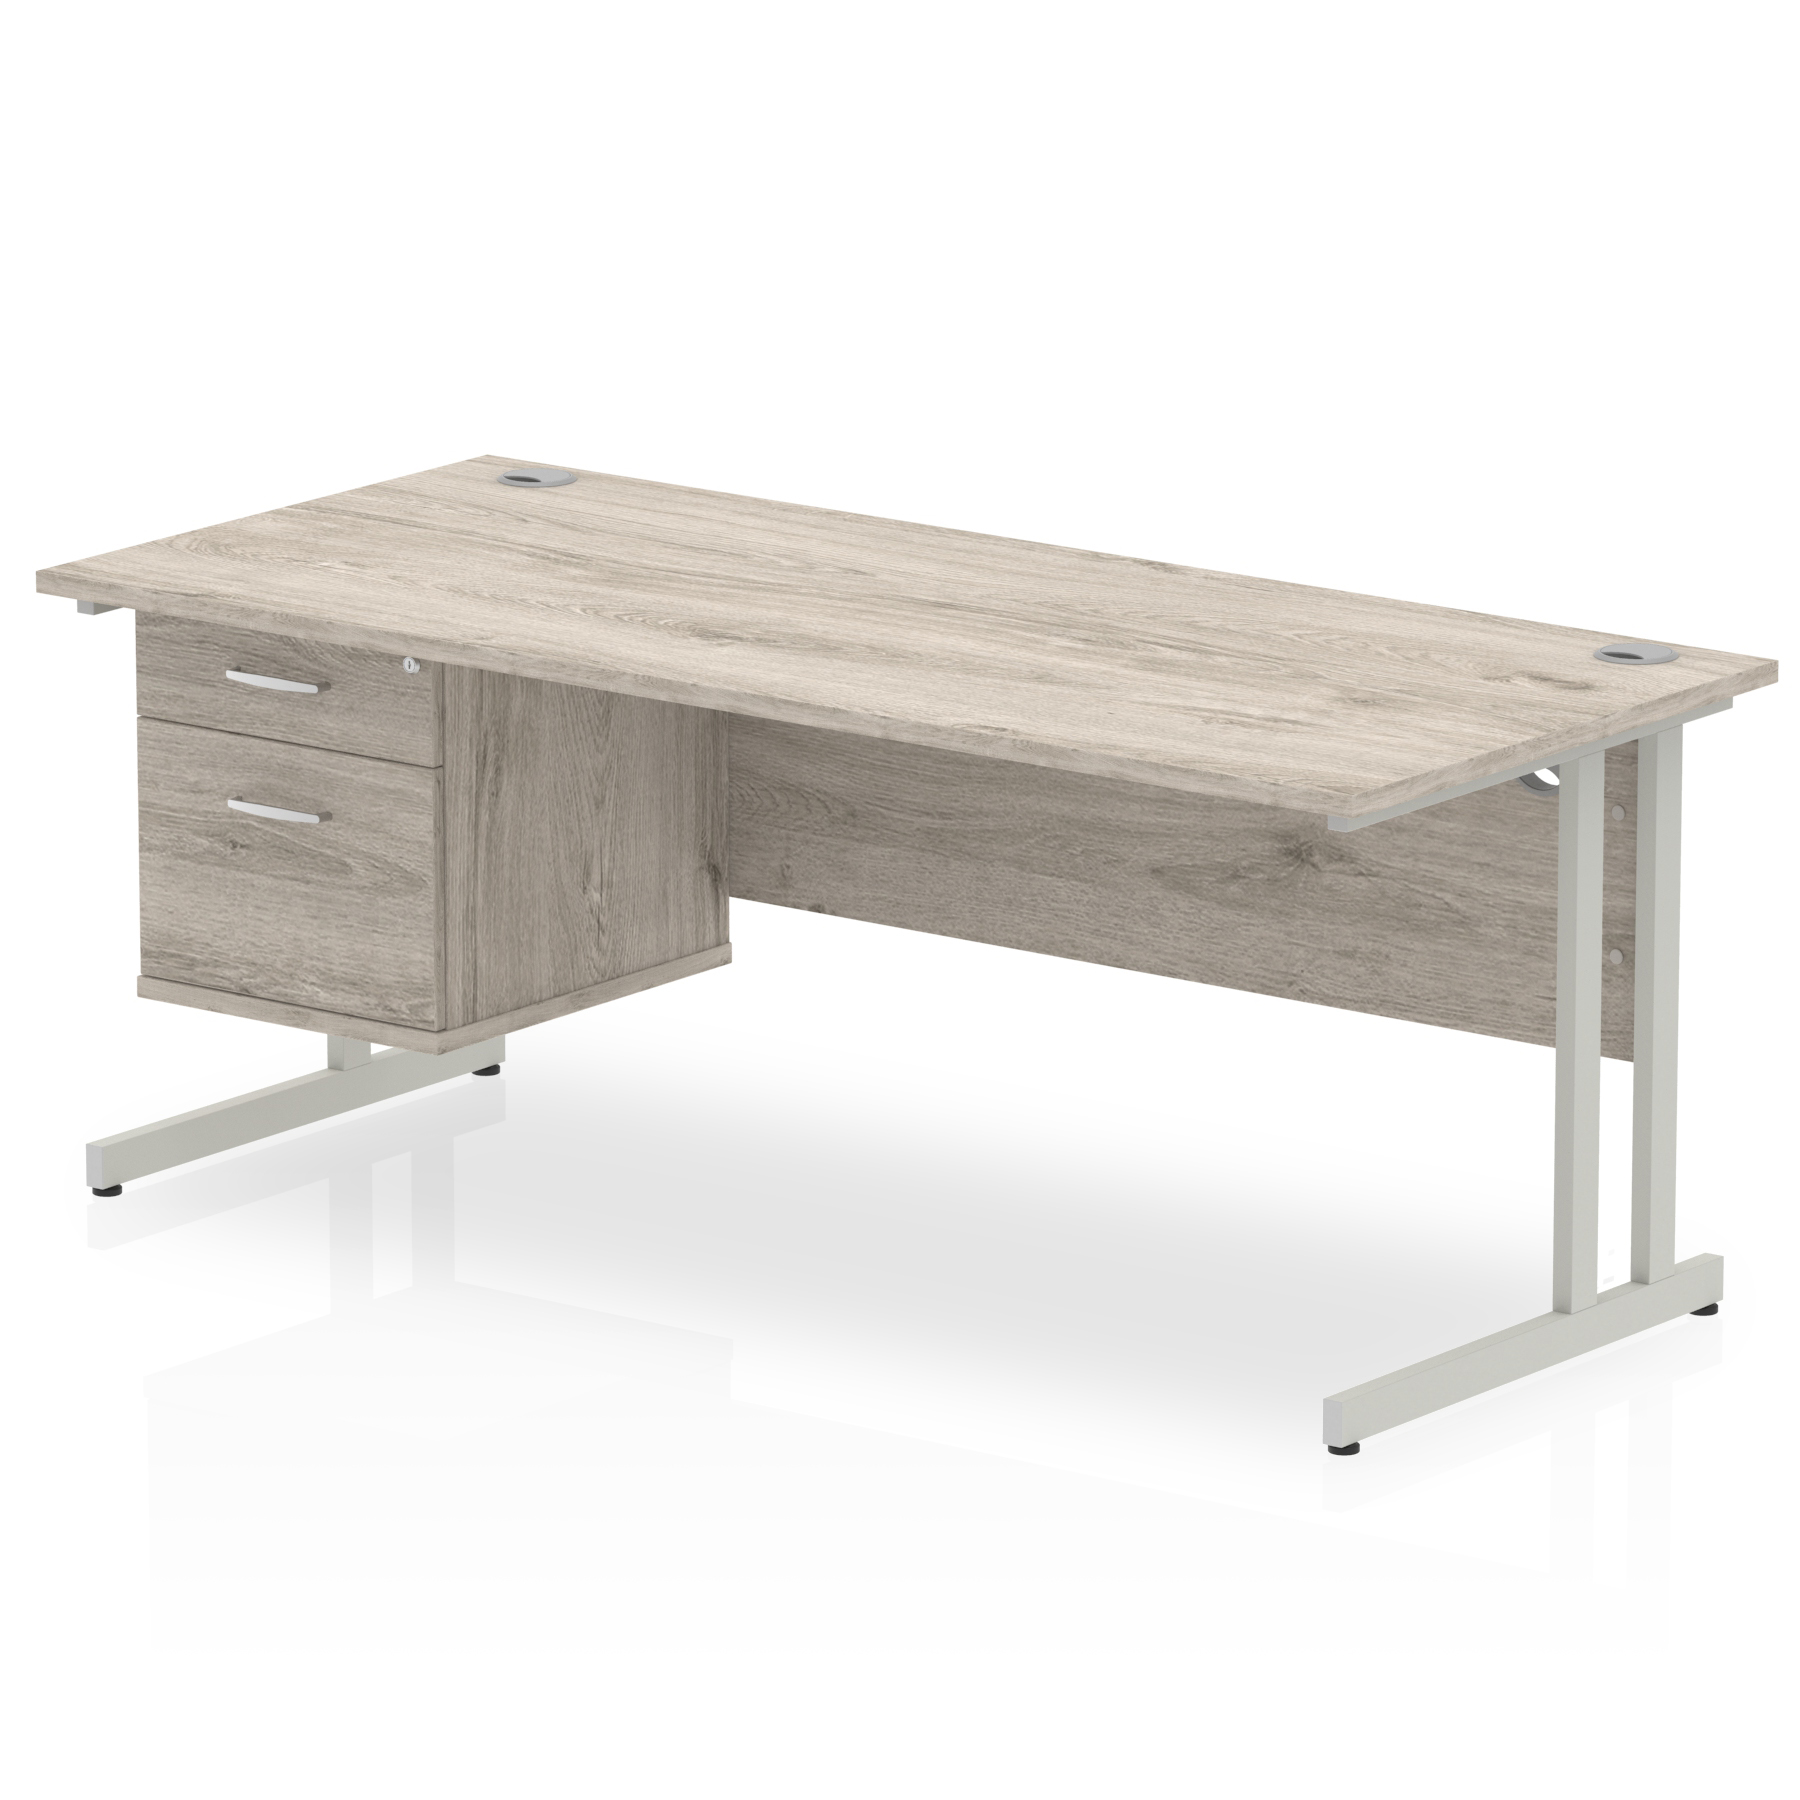 Trexus Rectangular Desk Silver Cantilever Leg 1800x800mm Fixed Ped 2 Drawers Grey Oak Ref I003511